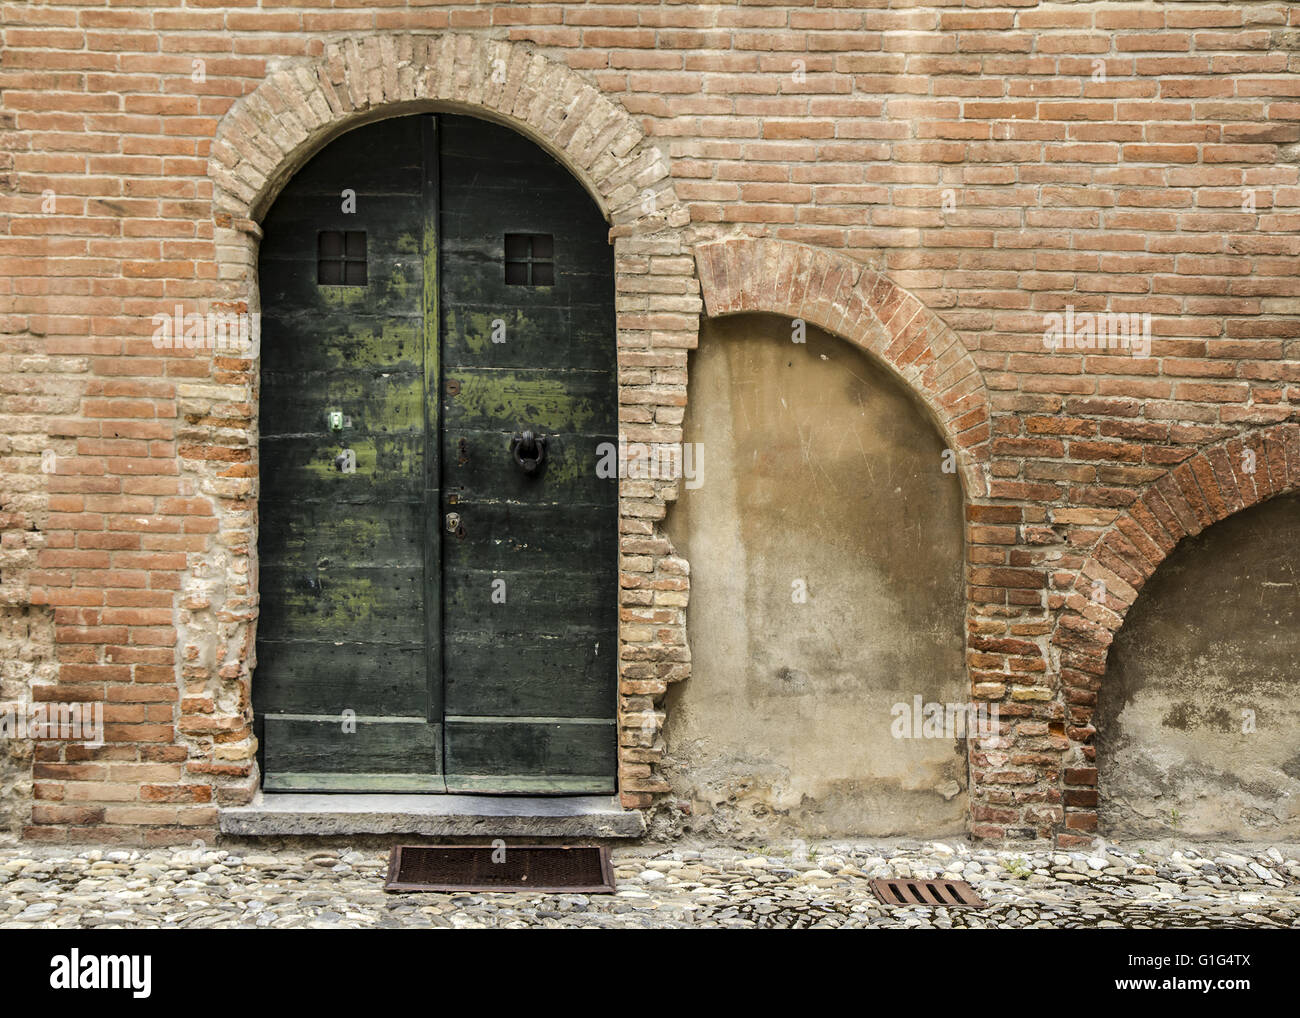 Typical Old Italian Door, Classic Building Facade   Stock Image